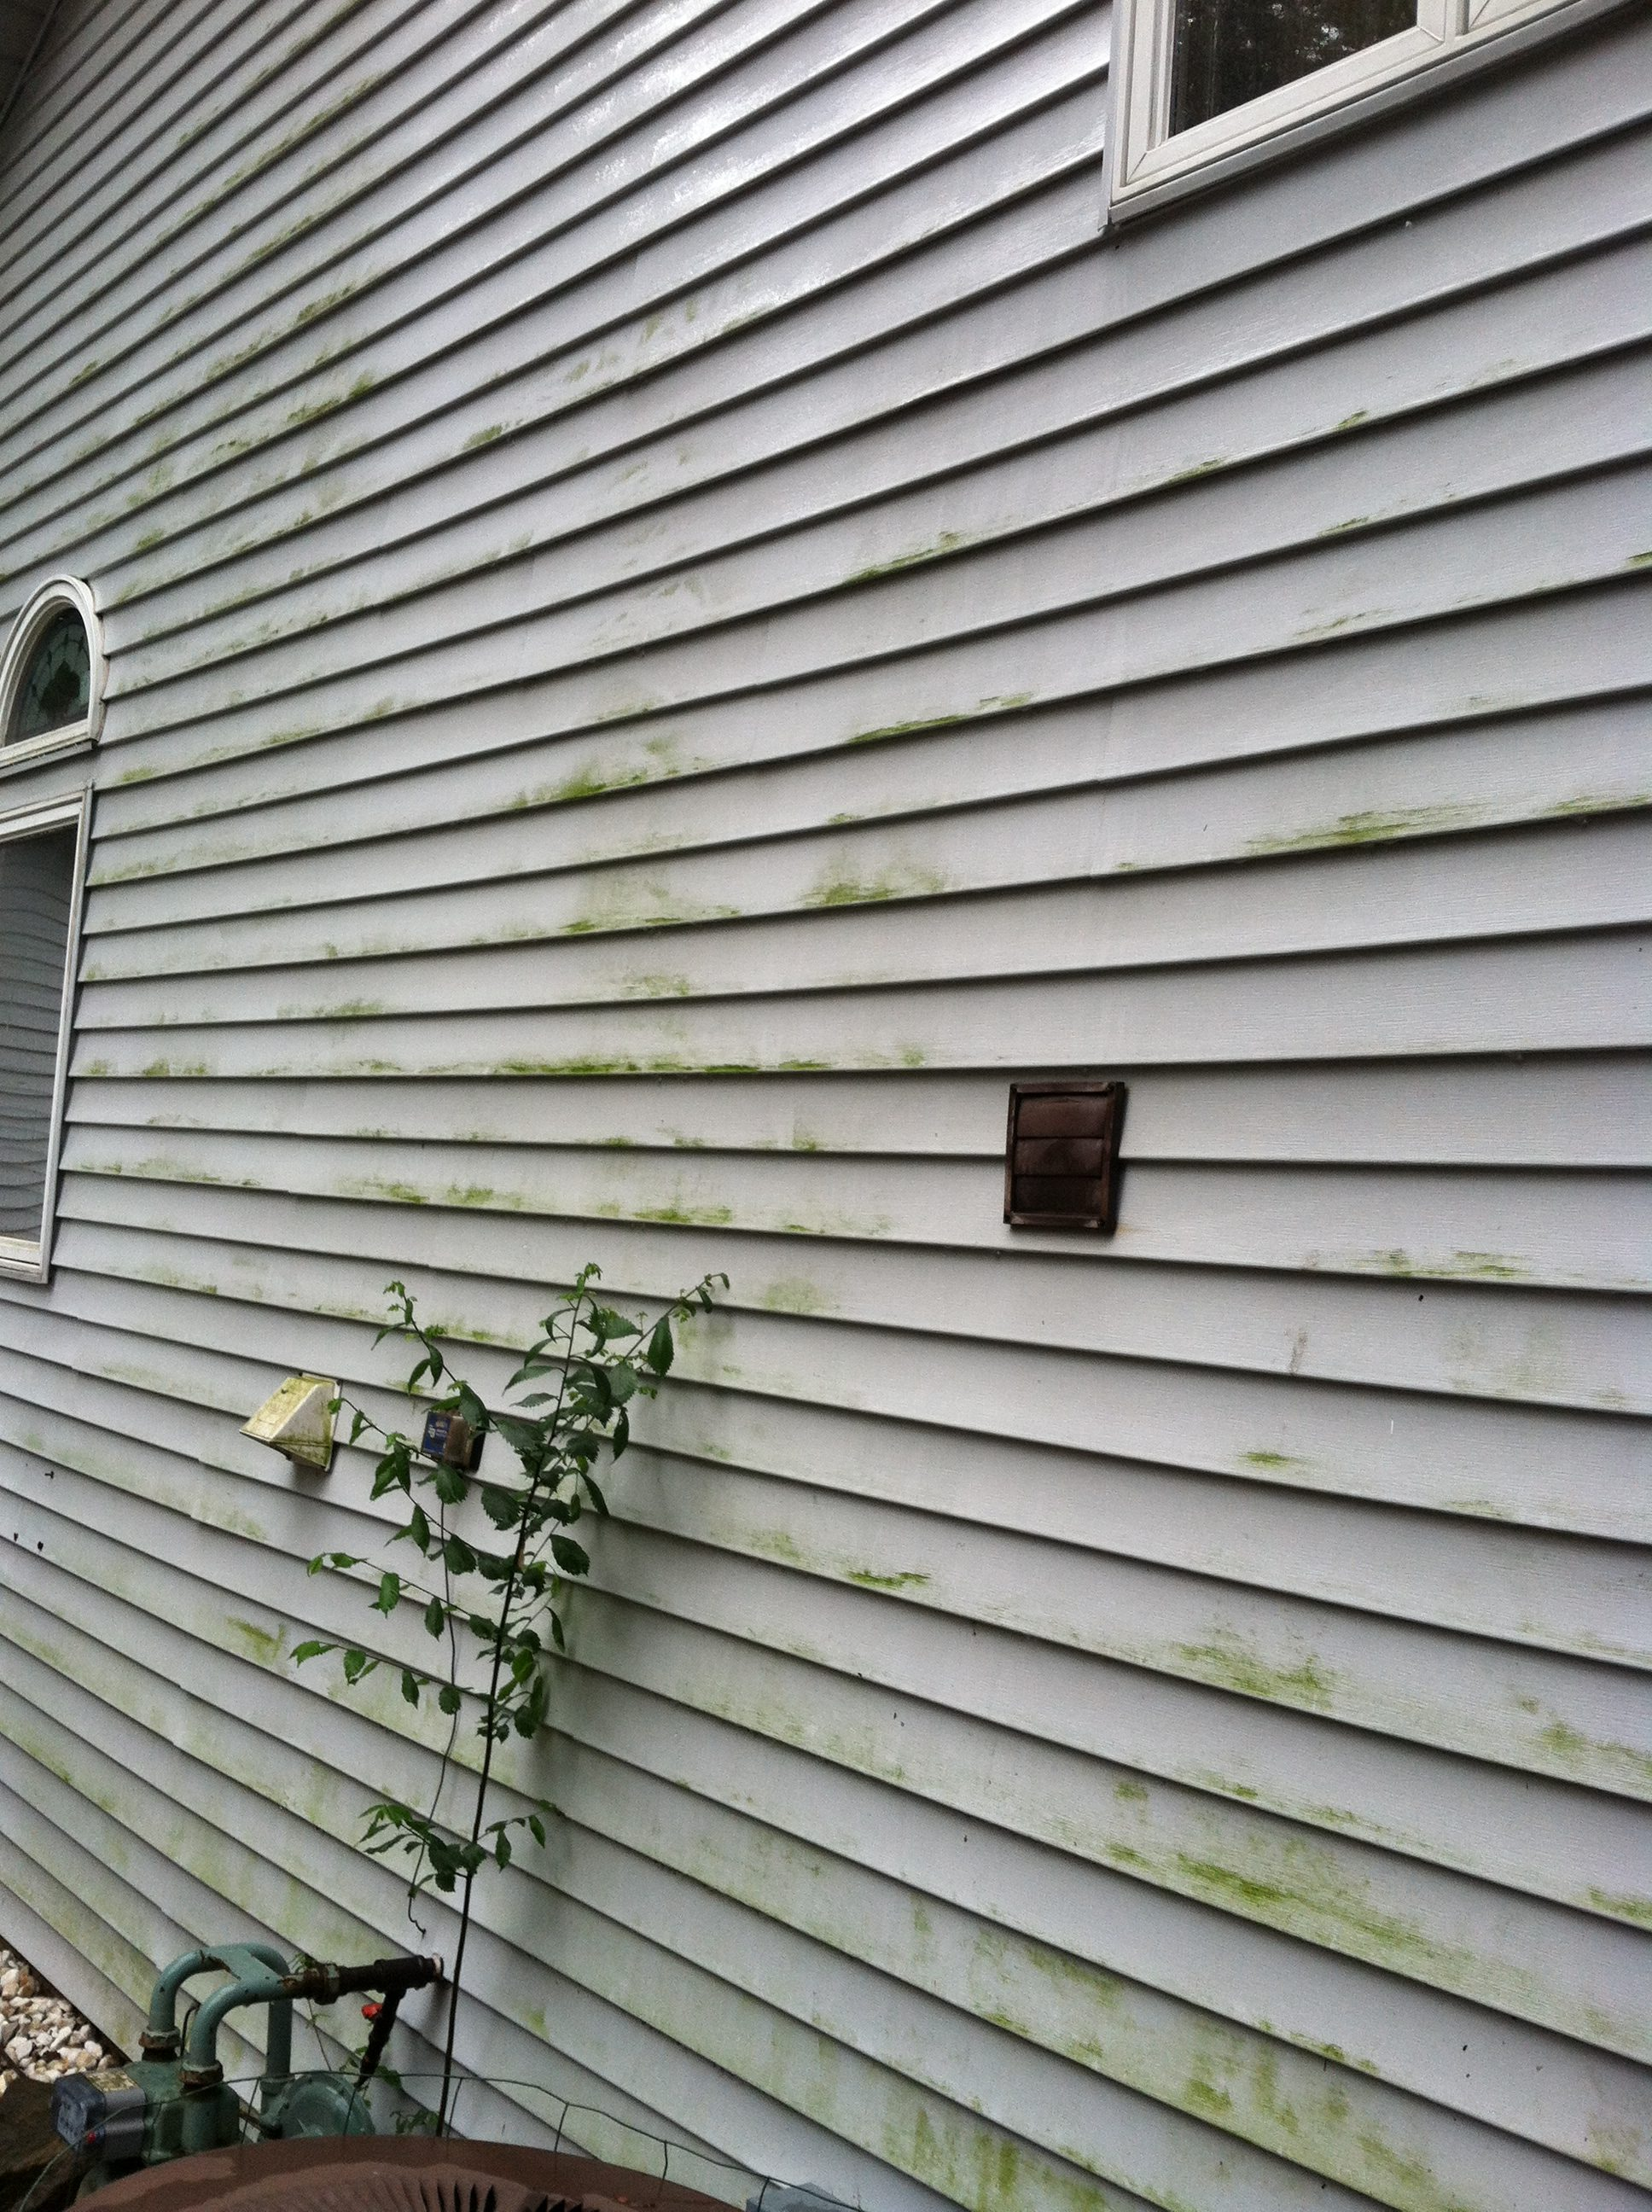 Before - Westlake Home With Mold and Algae on Vinyl Siding